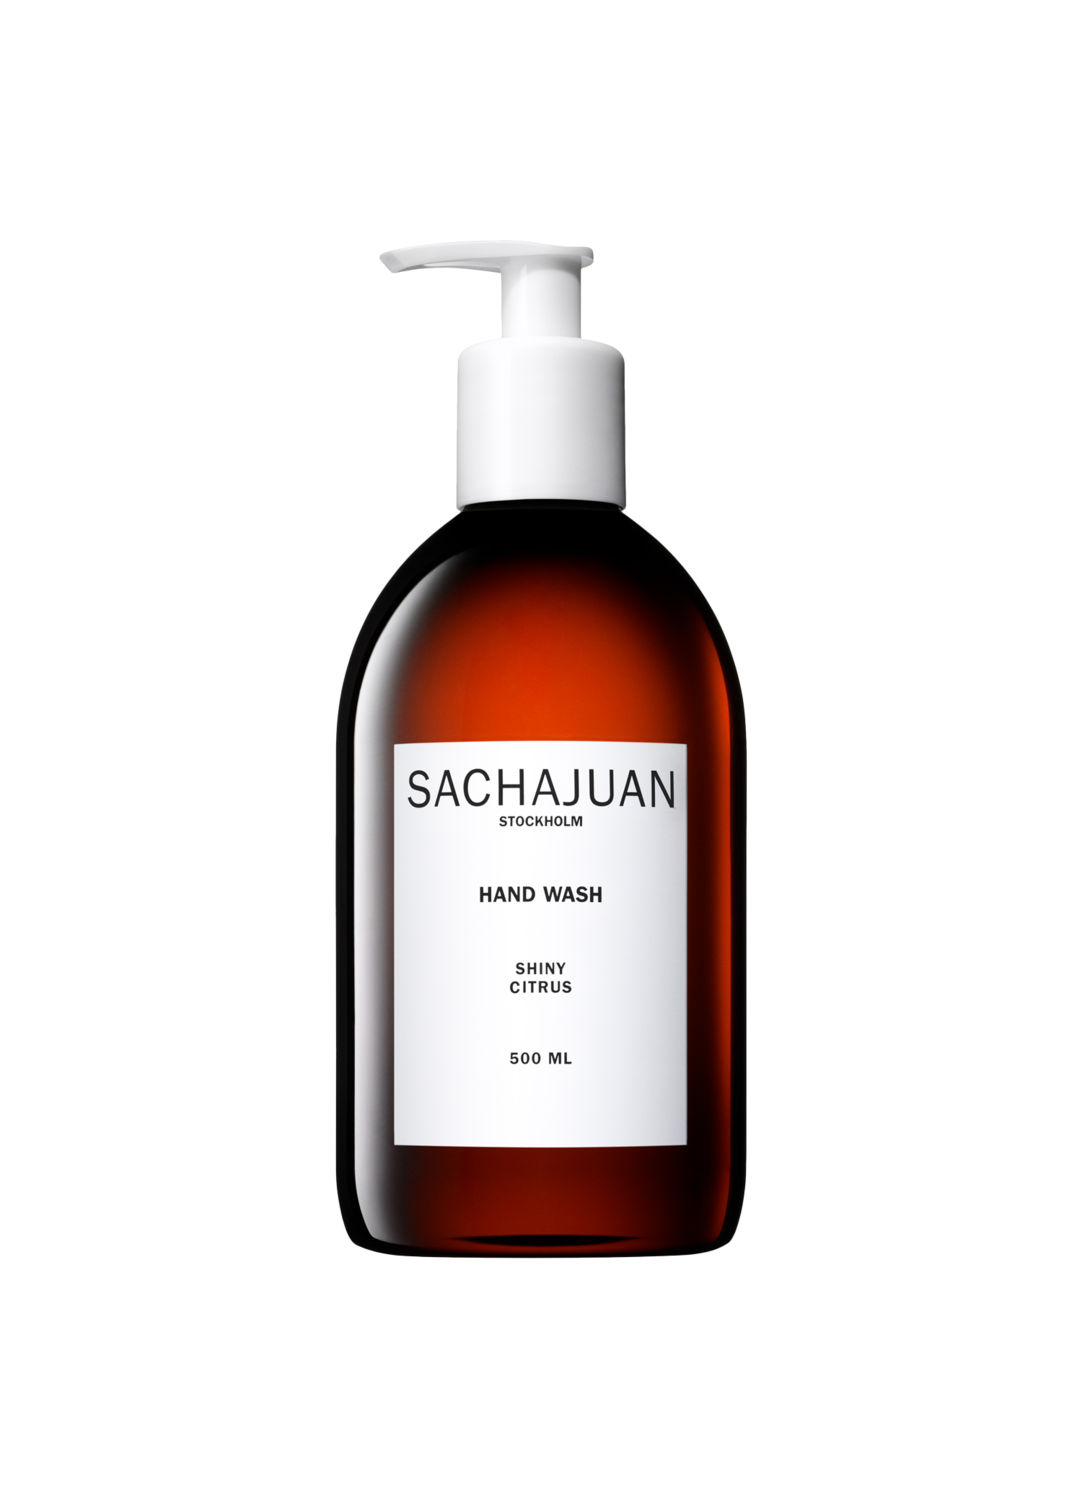 sachajuan hand wash - shiny citrus